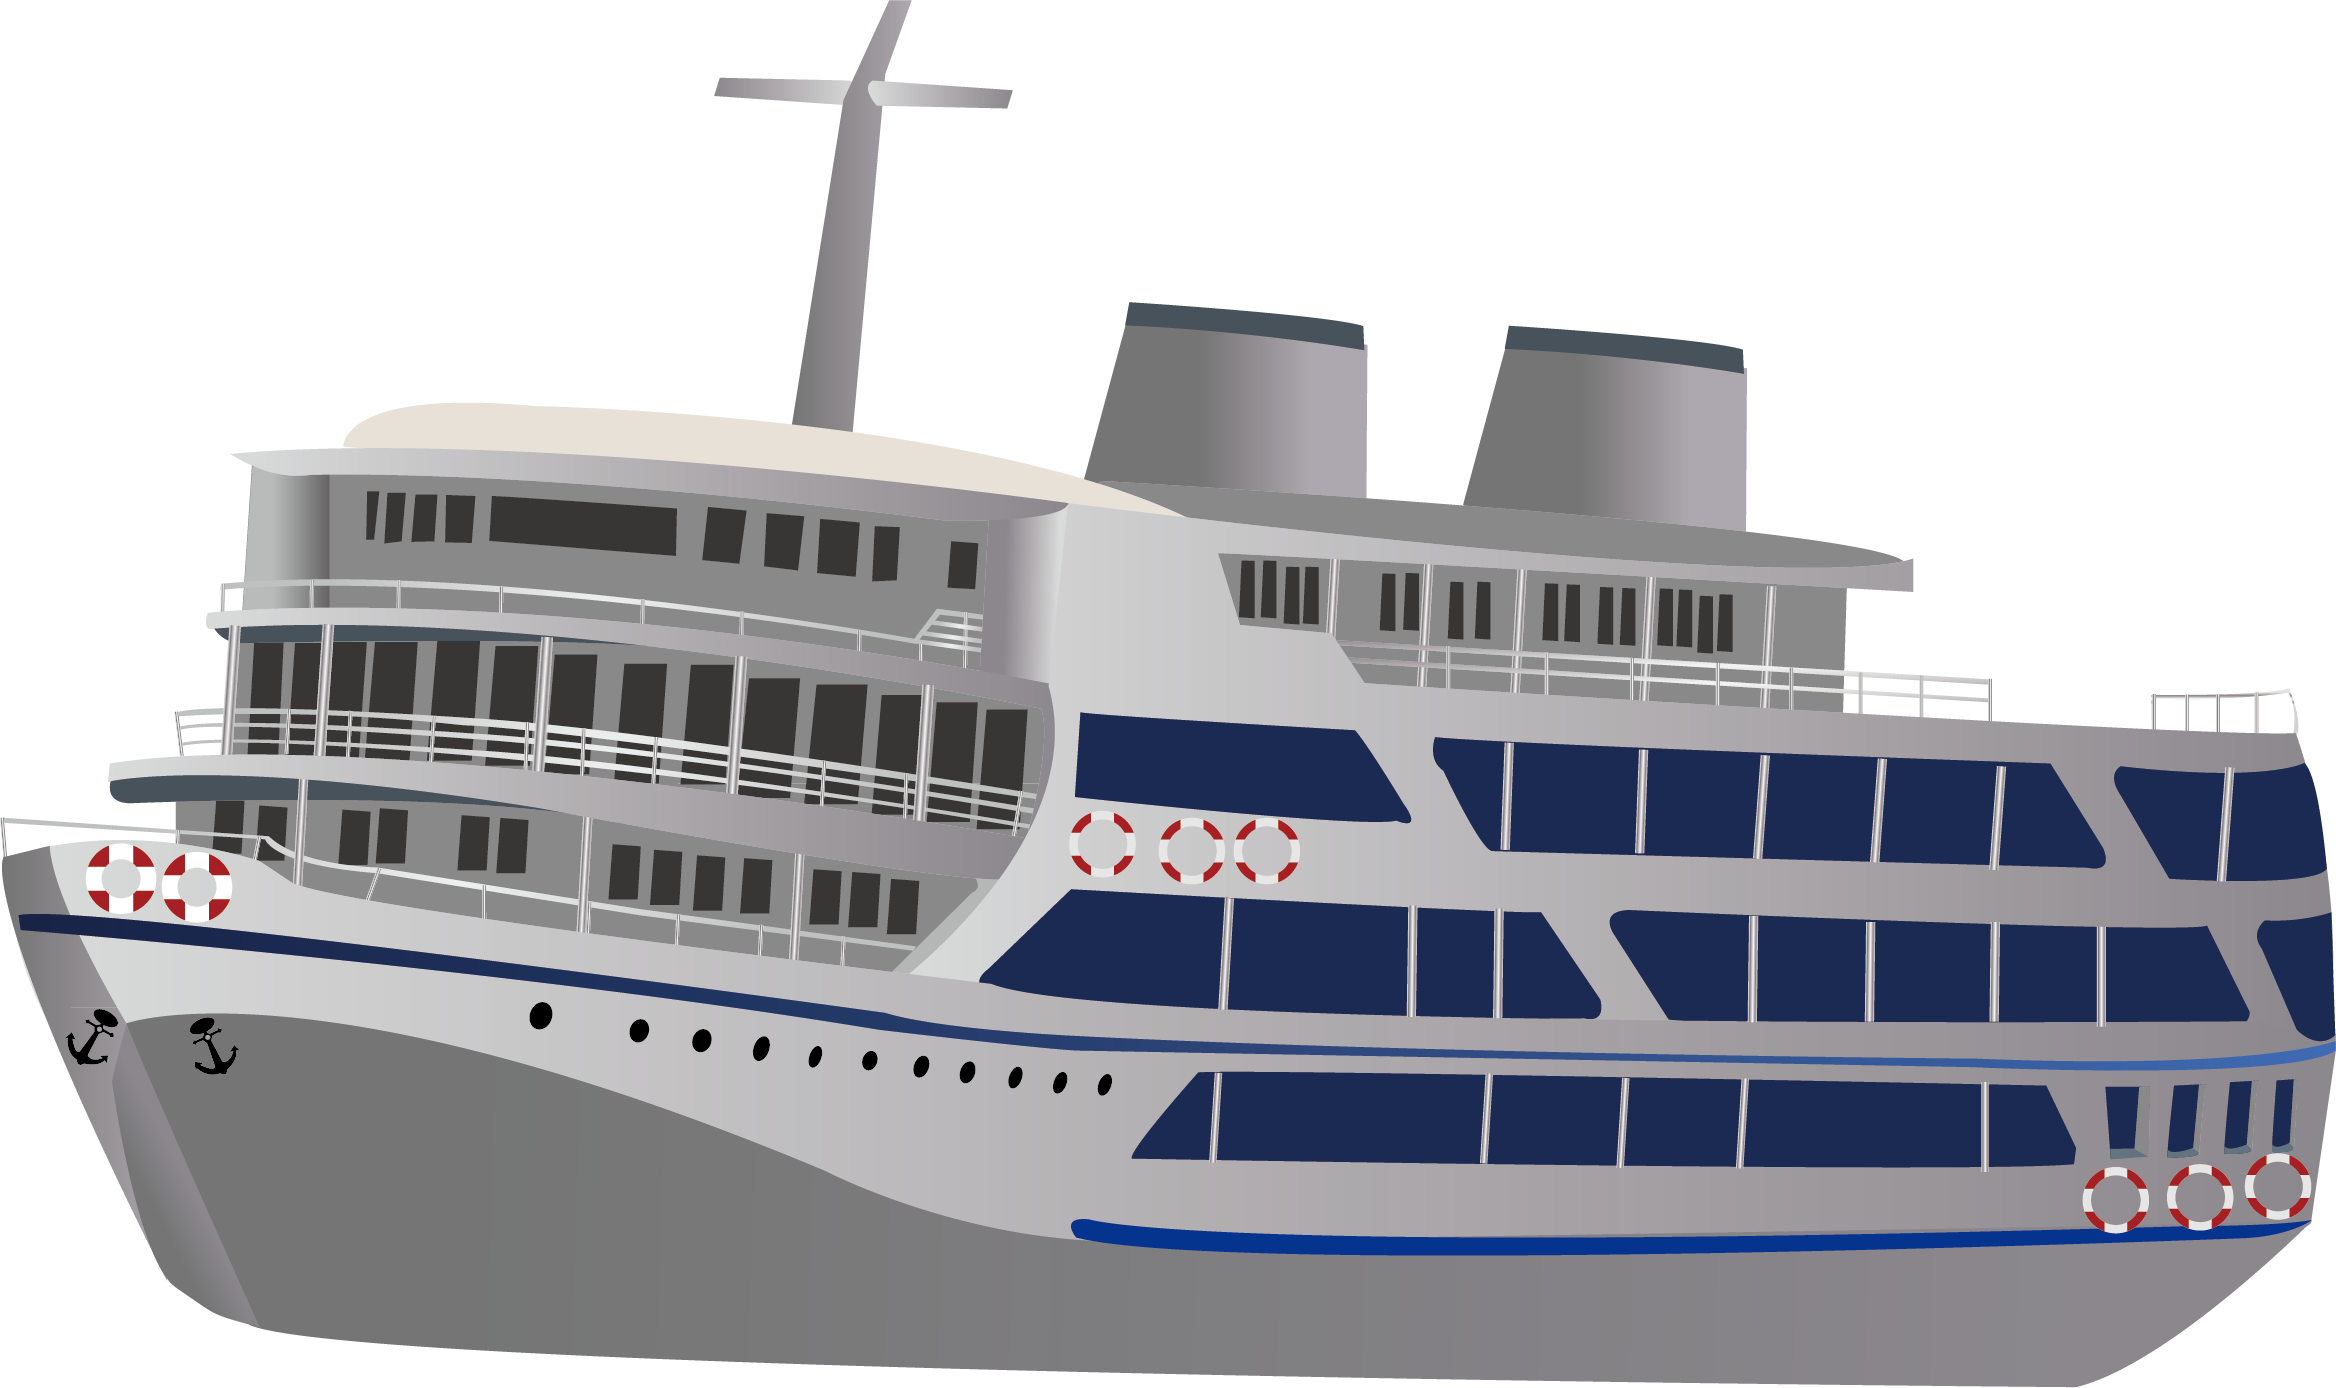 Cruise drawing passenger vessel. Sailboat motorboat clip art